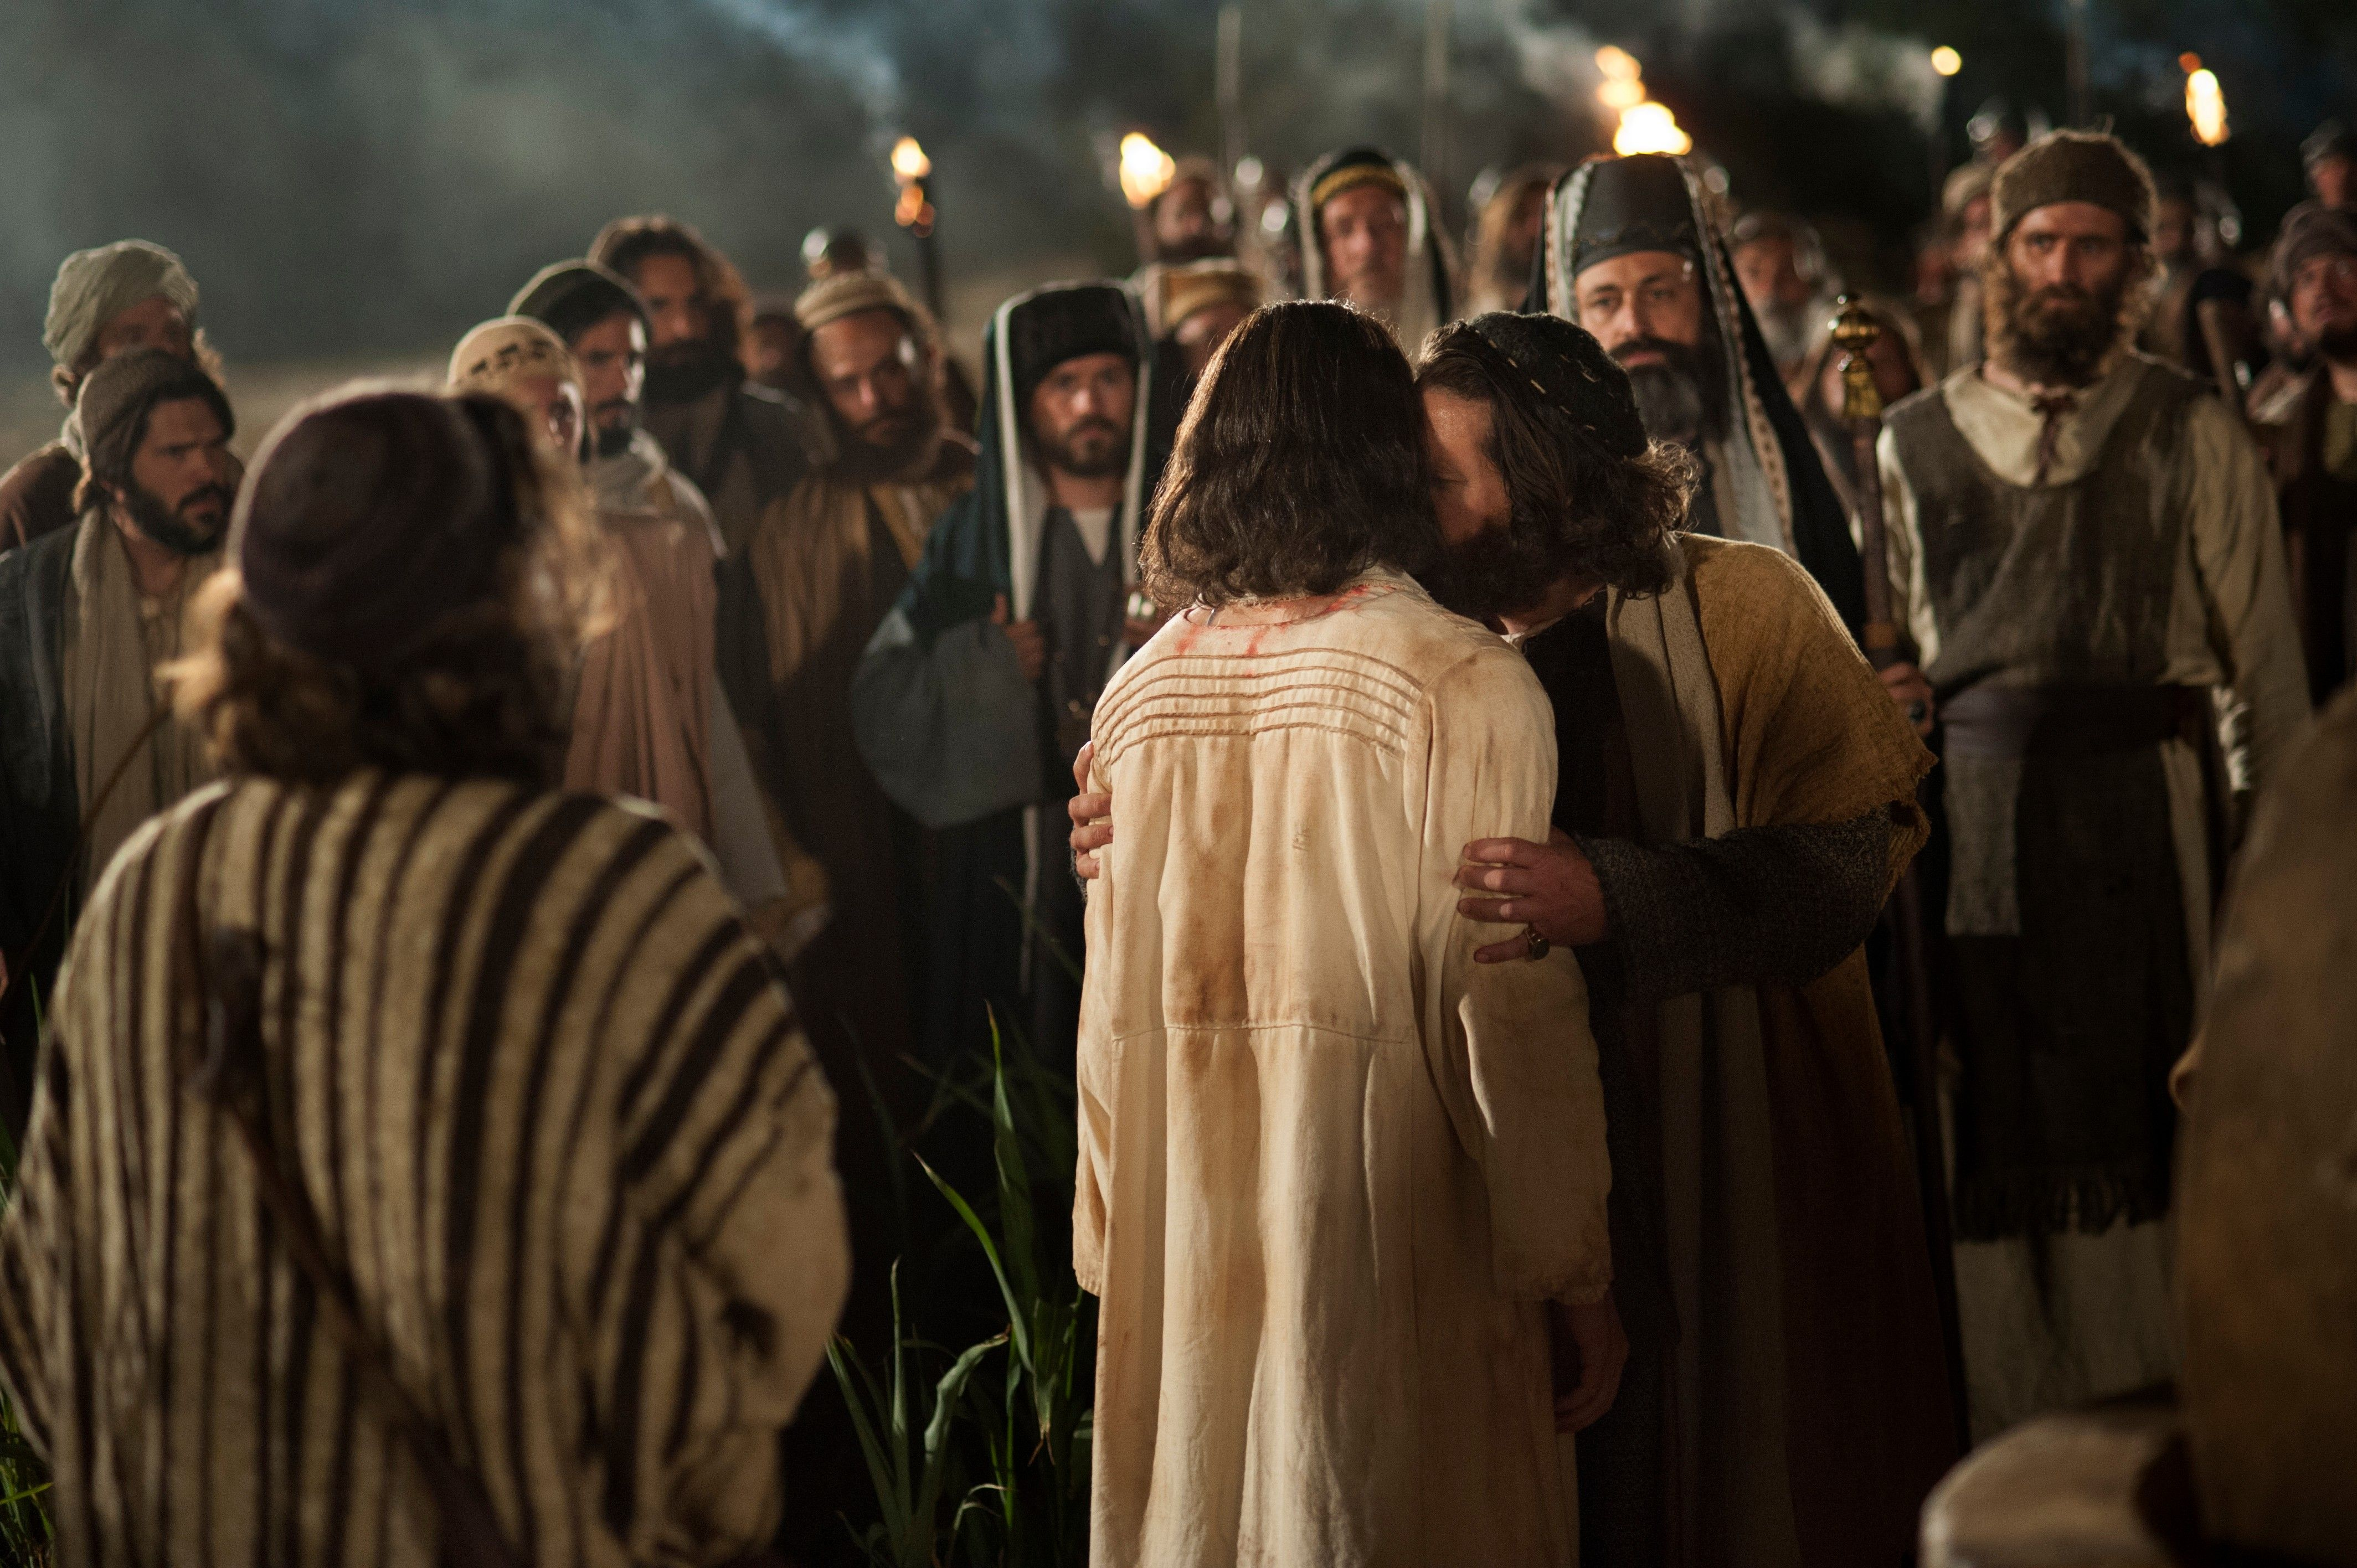 Judas gives Christ a kiss on the cheek as a sign to the soldier that Jesus is the one who should be arrested.